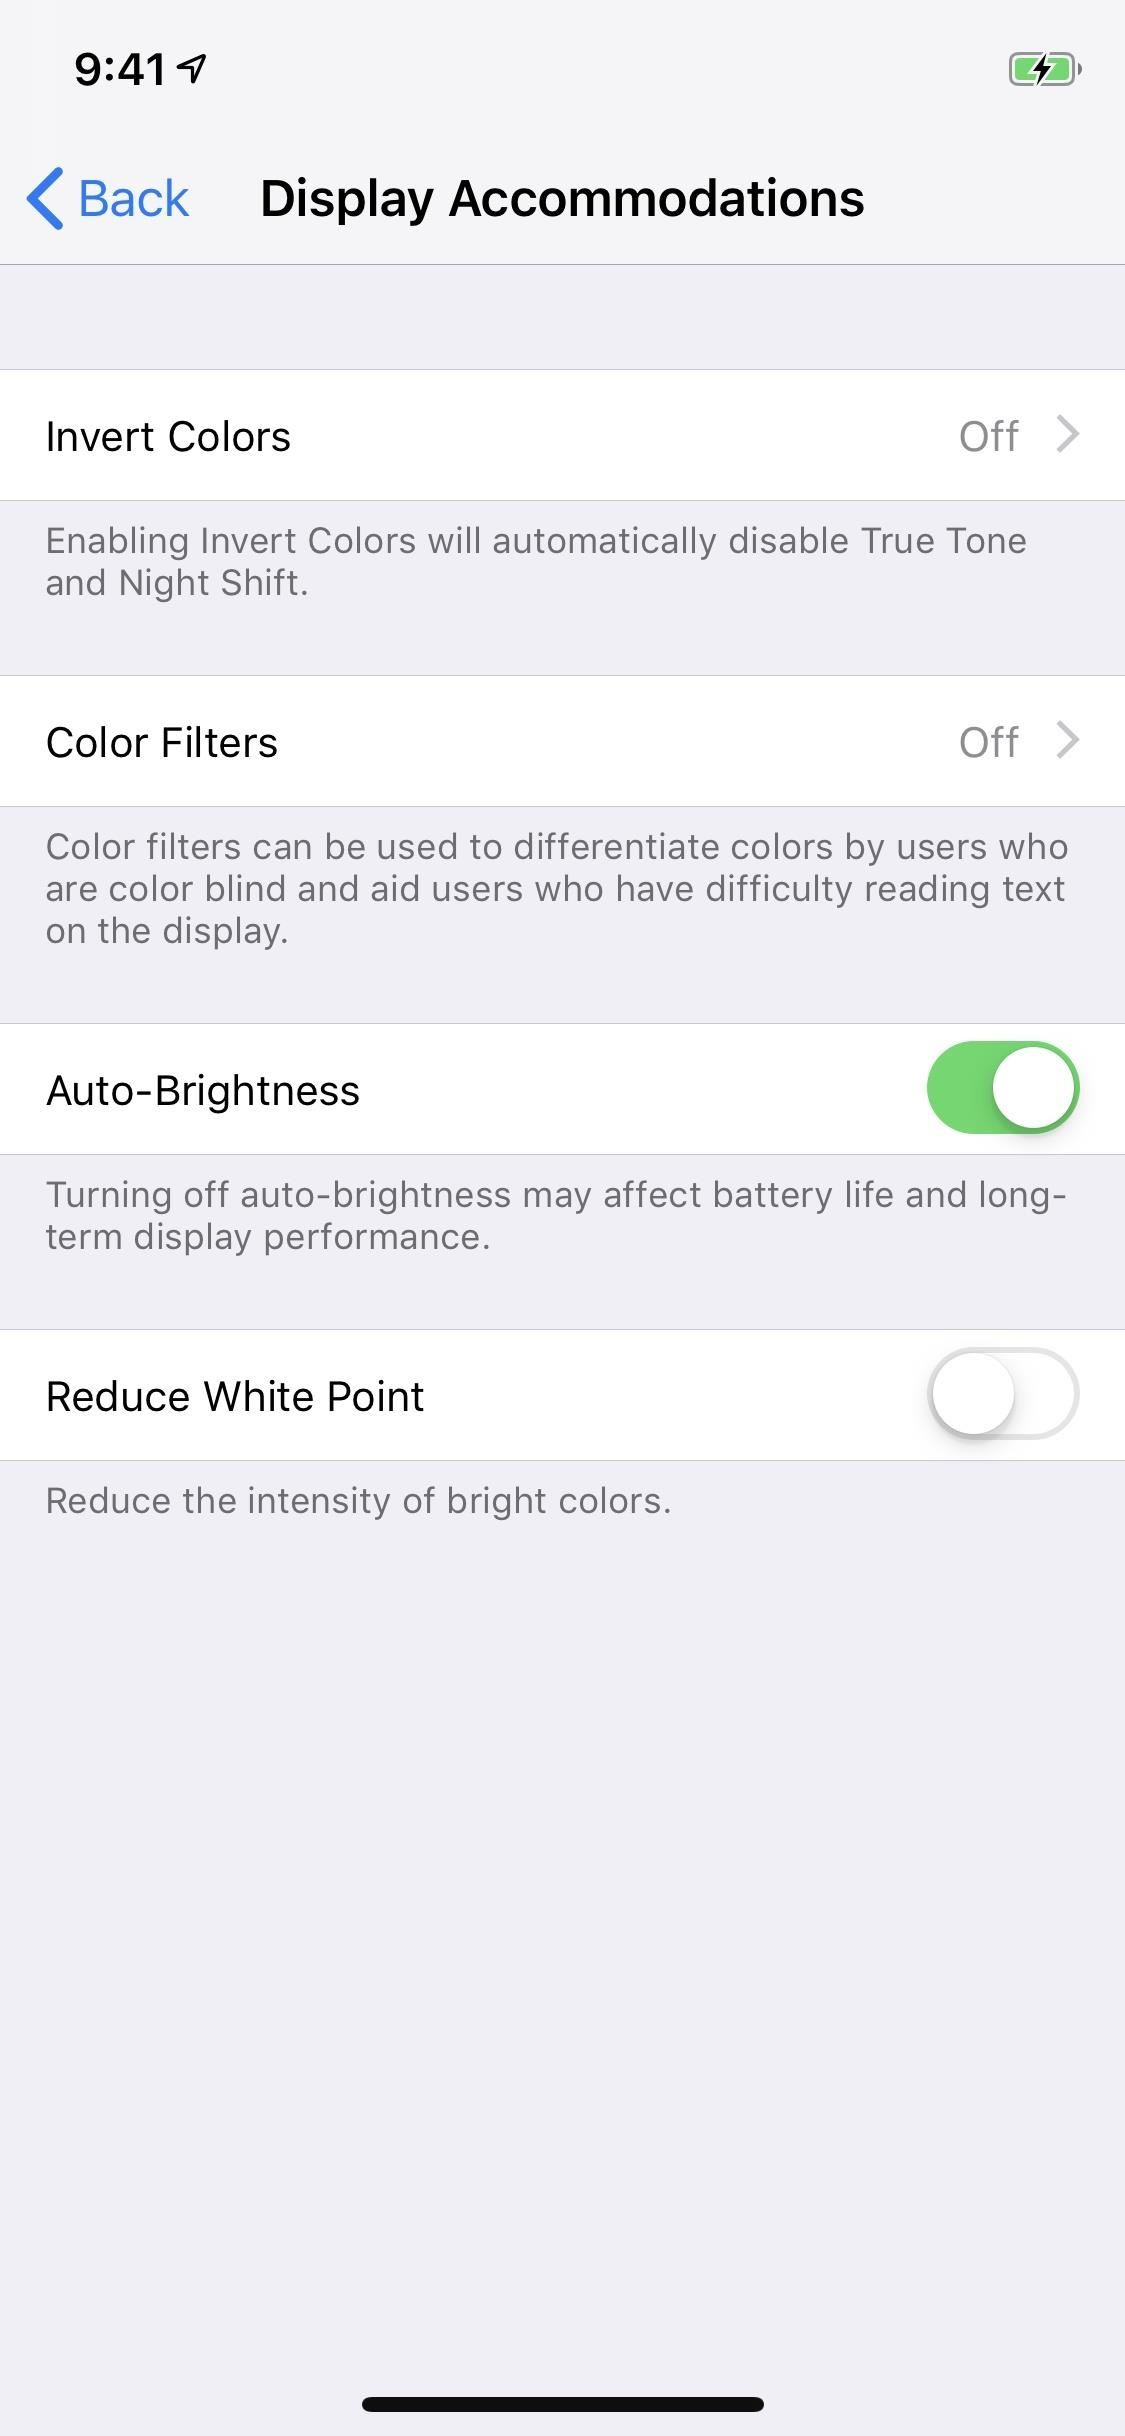 How to Turn Your iPhone's Auto-Brightness Off in iOS 12